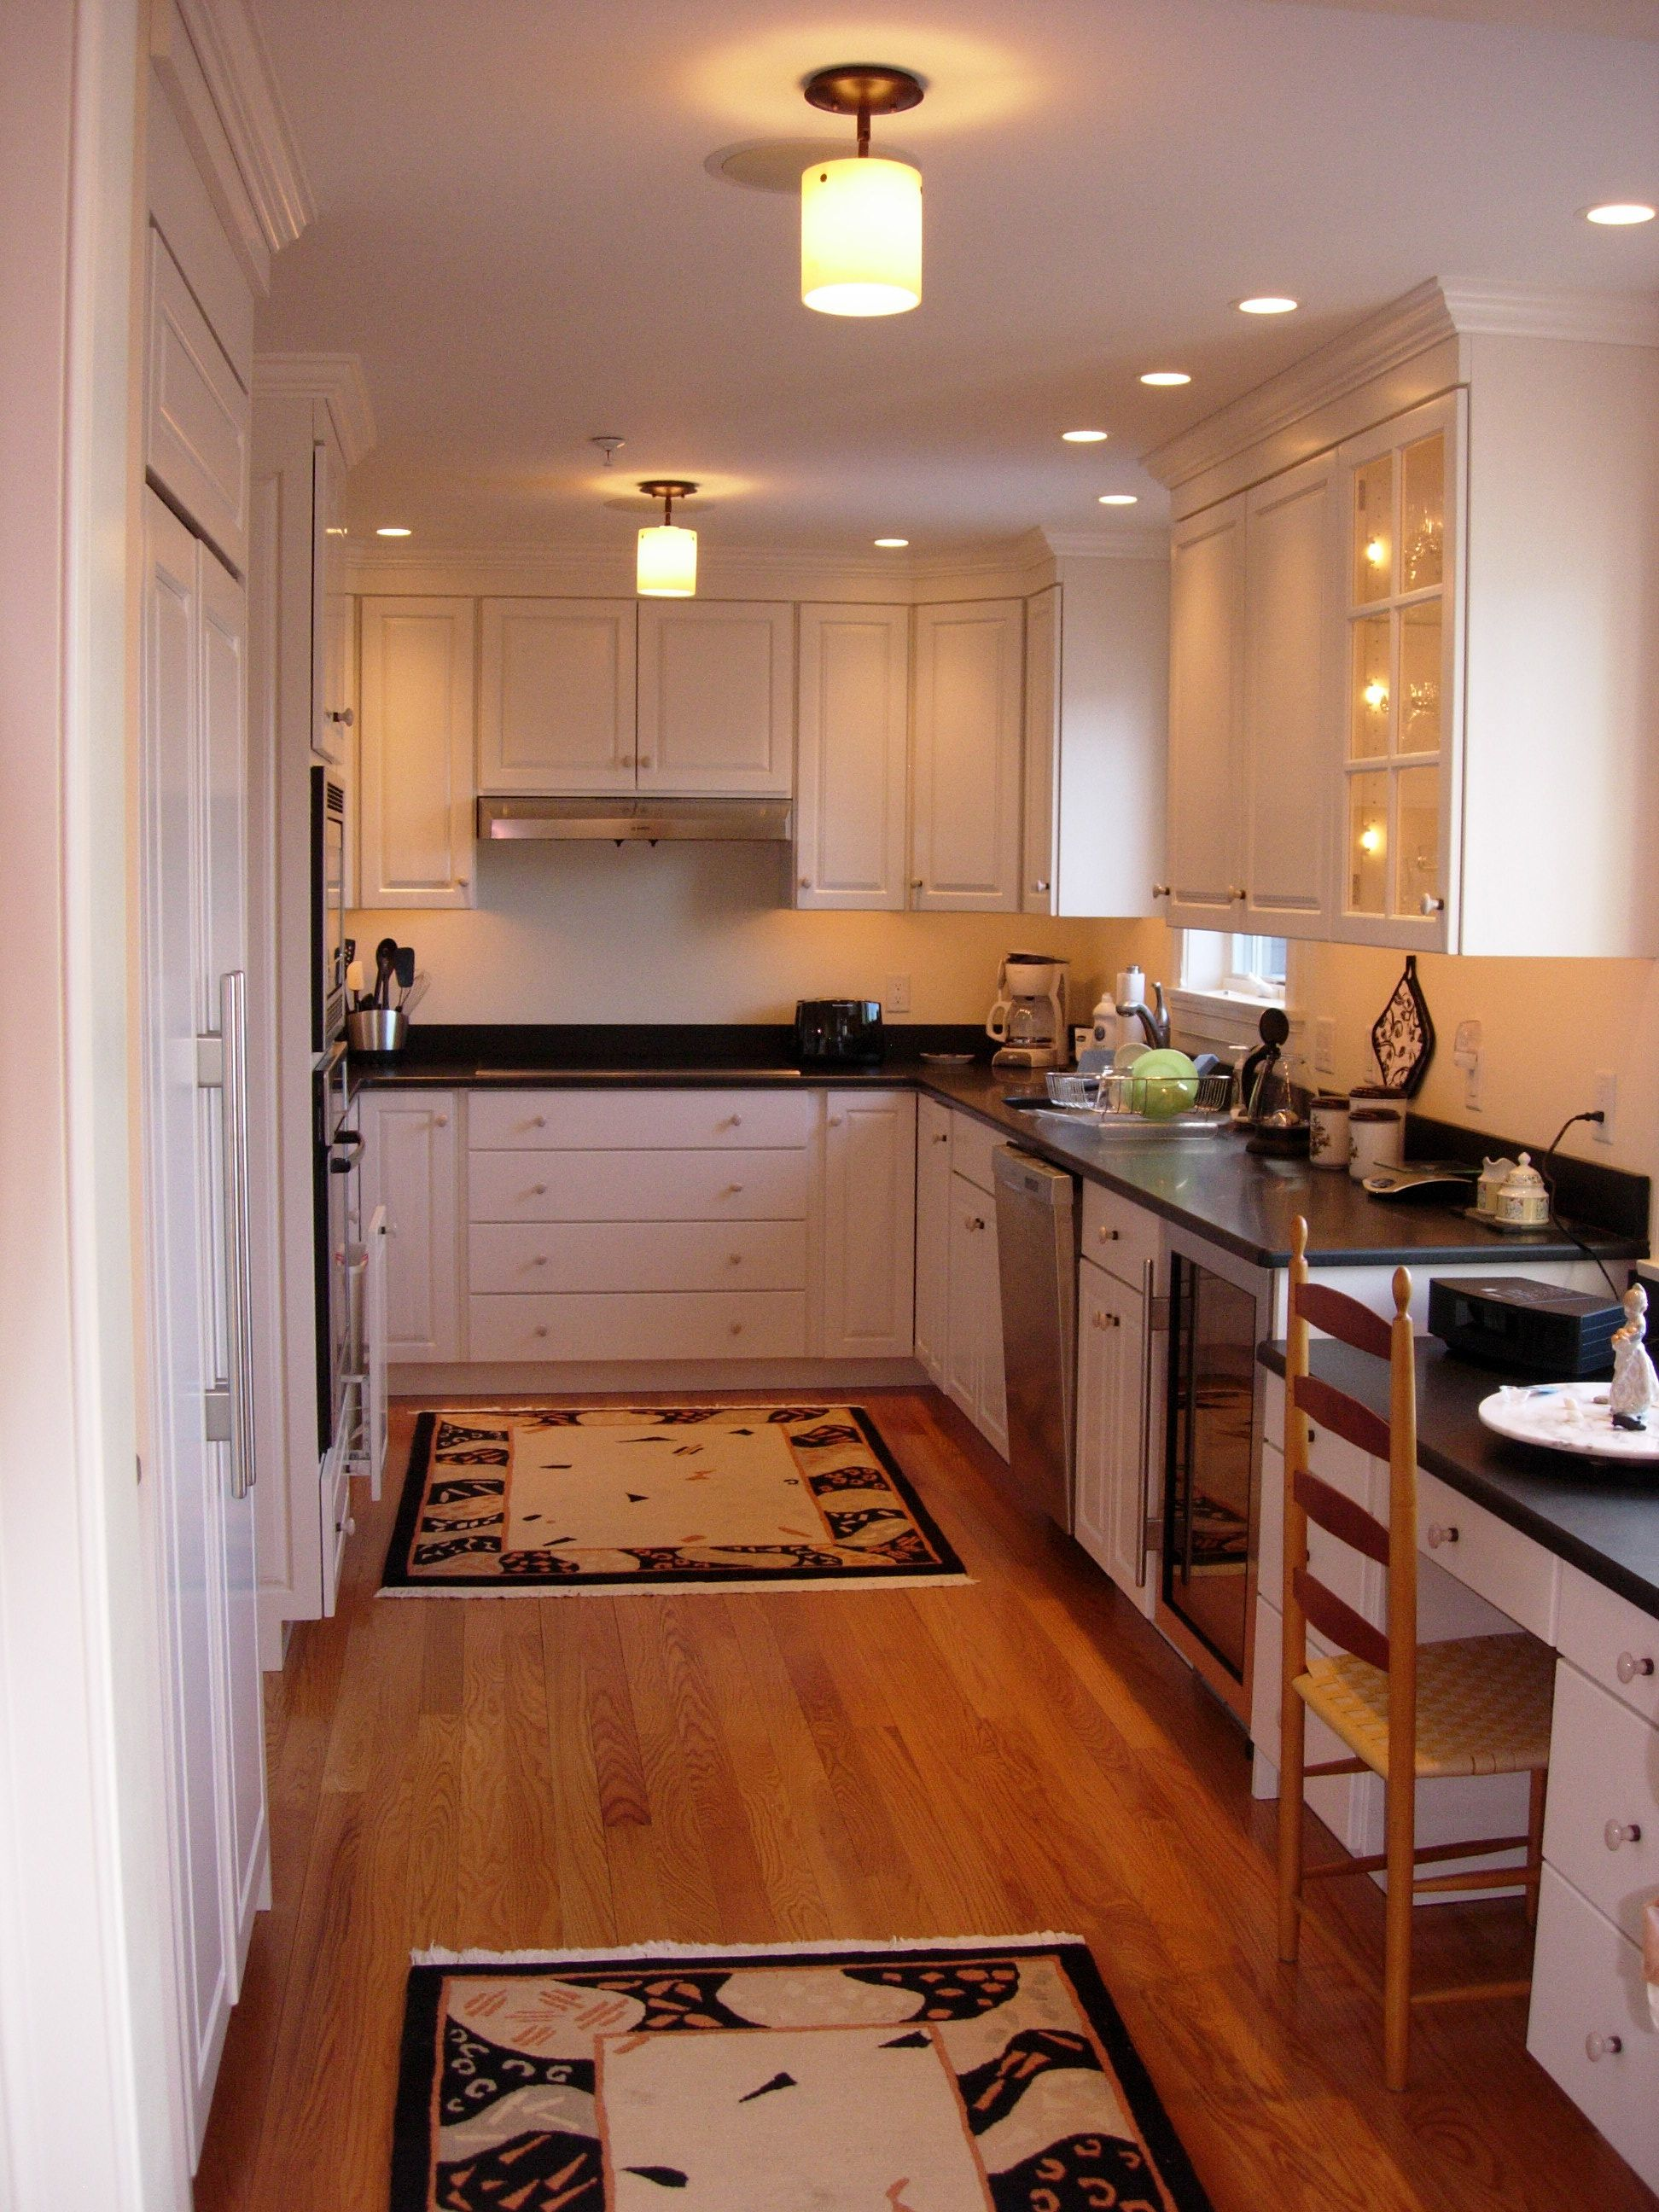 Recessed Lighting In A Small Kitchen Kitchen Design